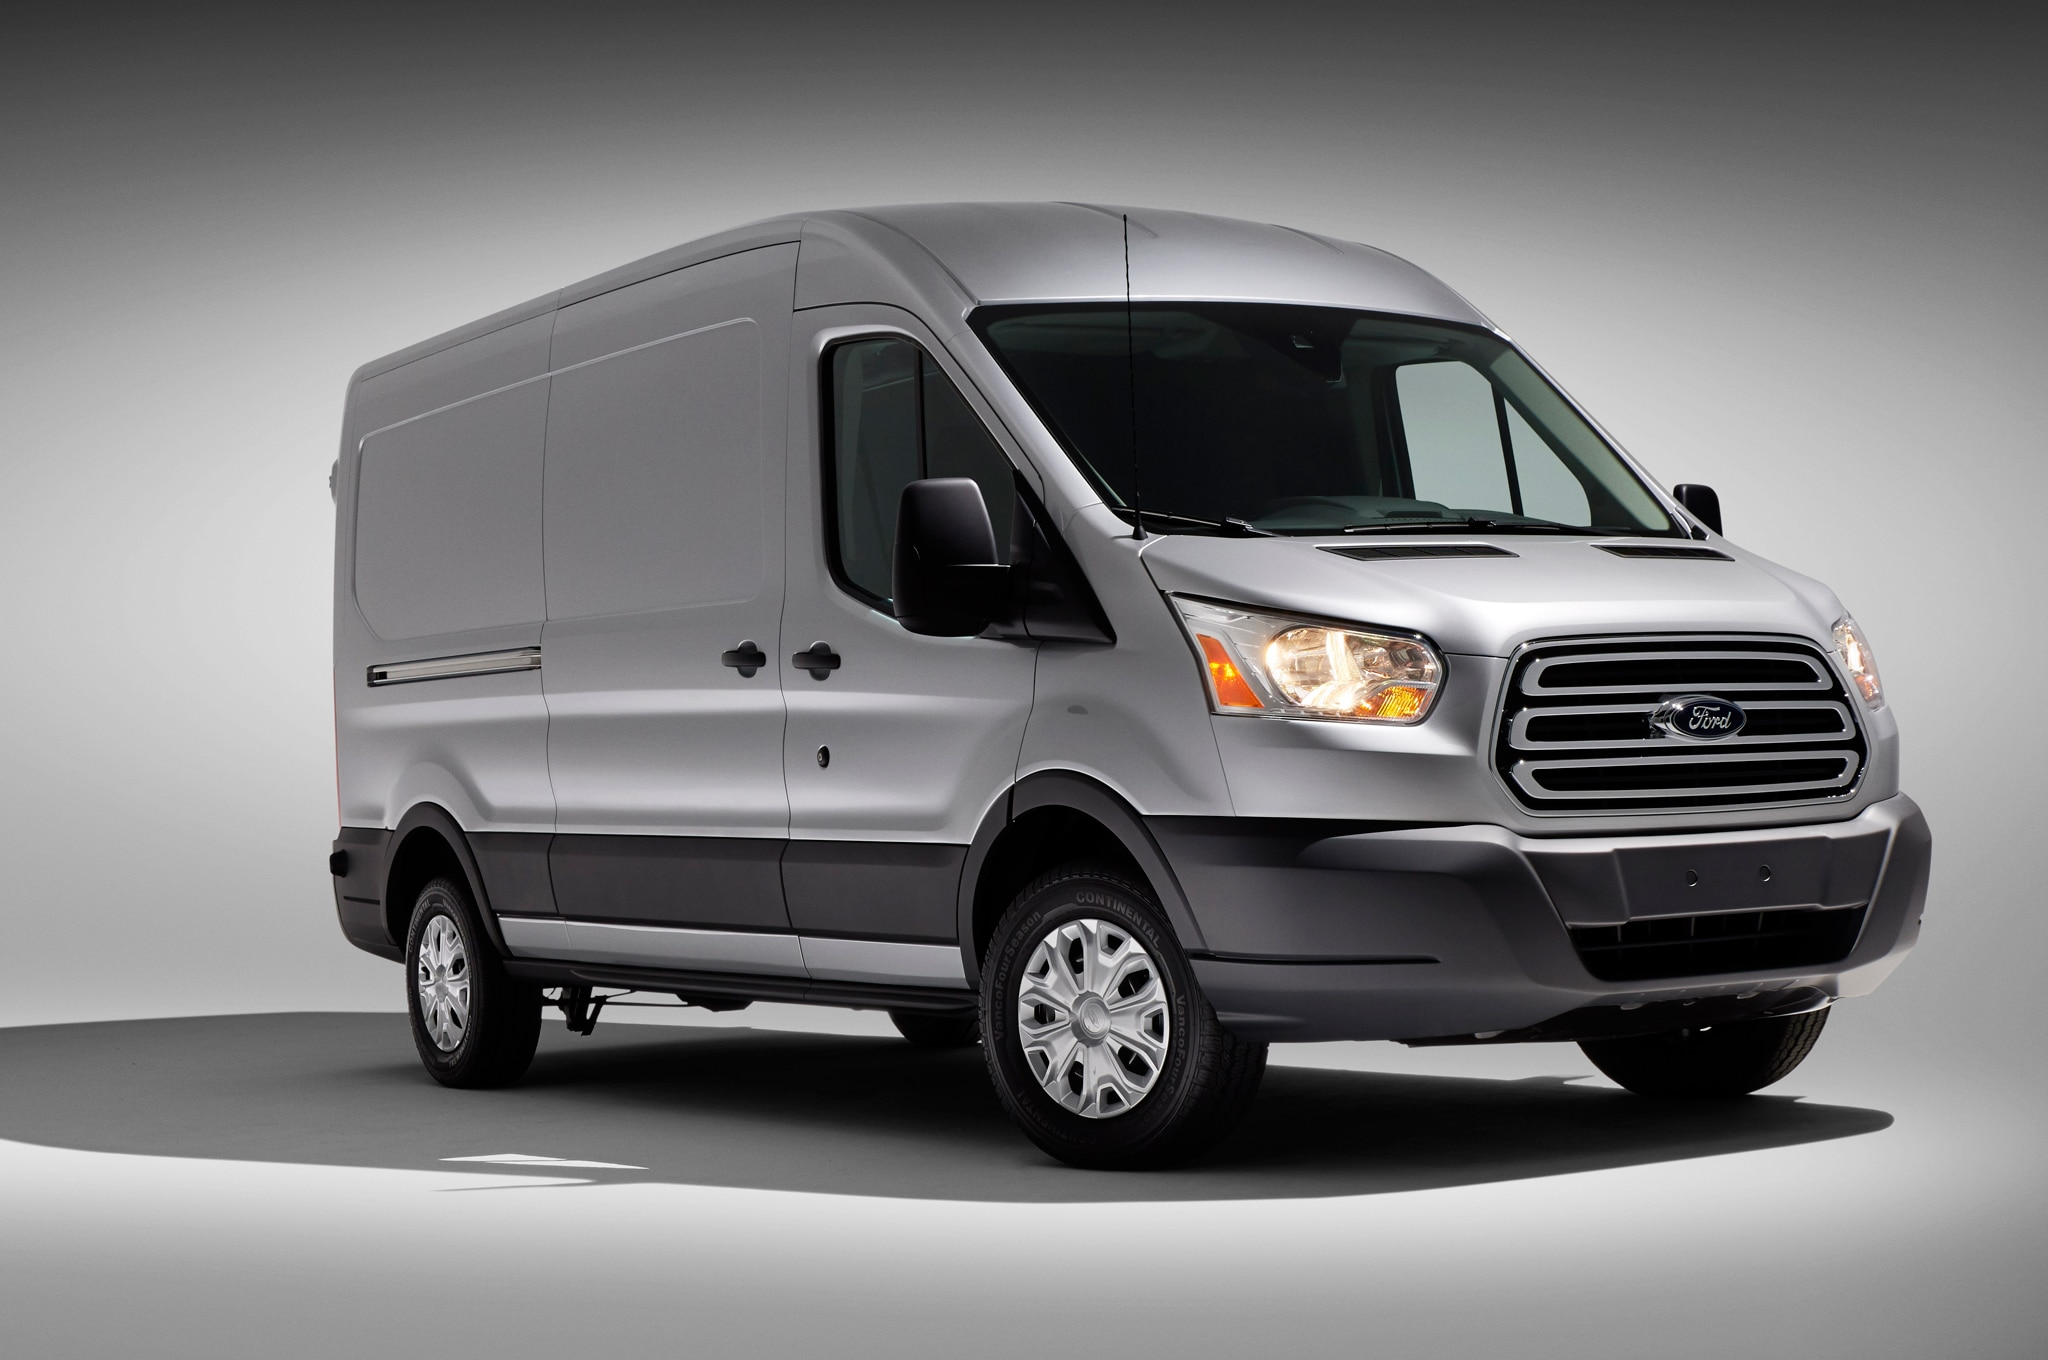 2004 ford e150 econoline towing capacity